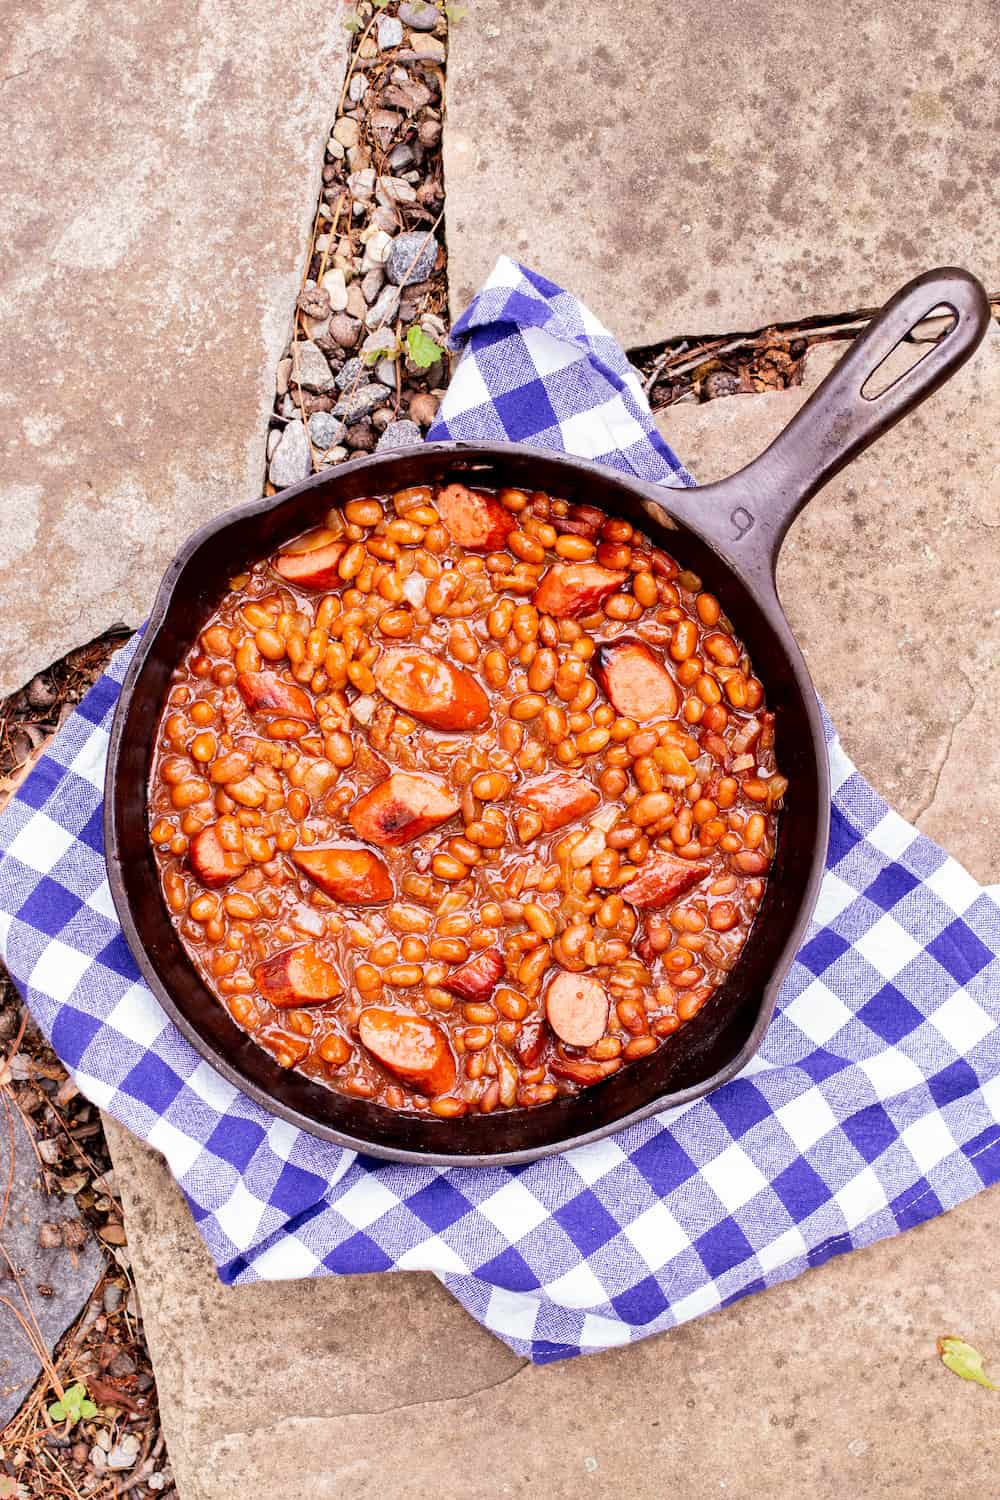 franks and beans in a cast iron skillet